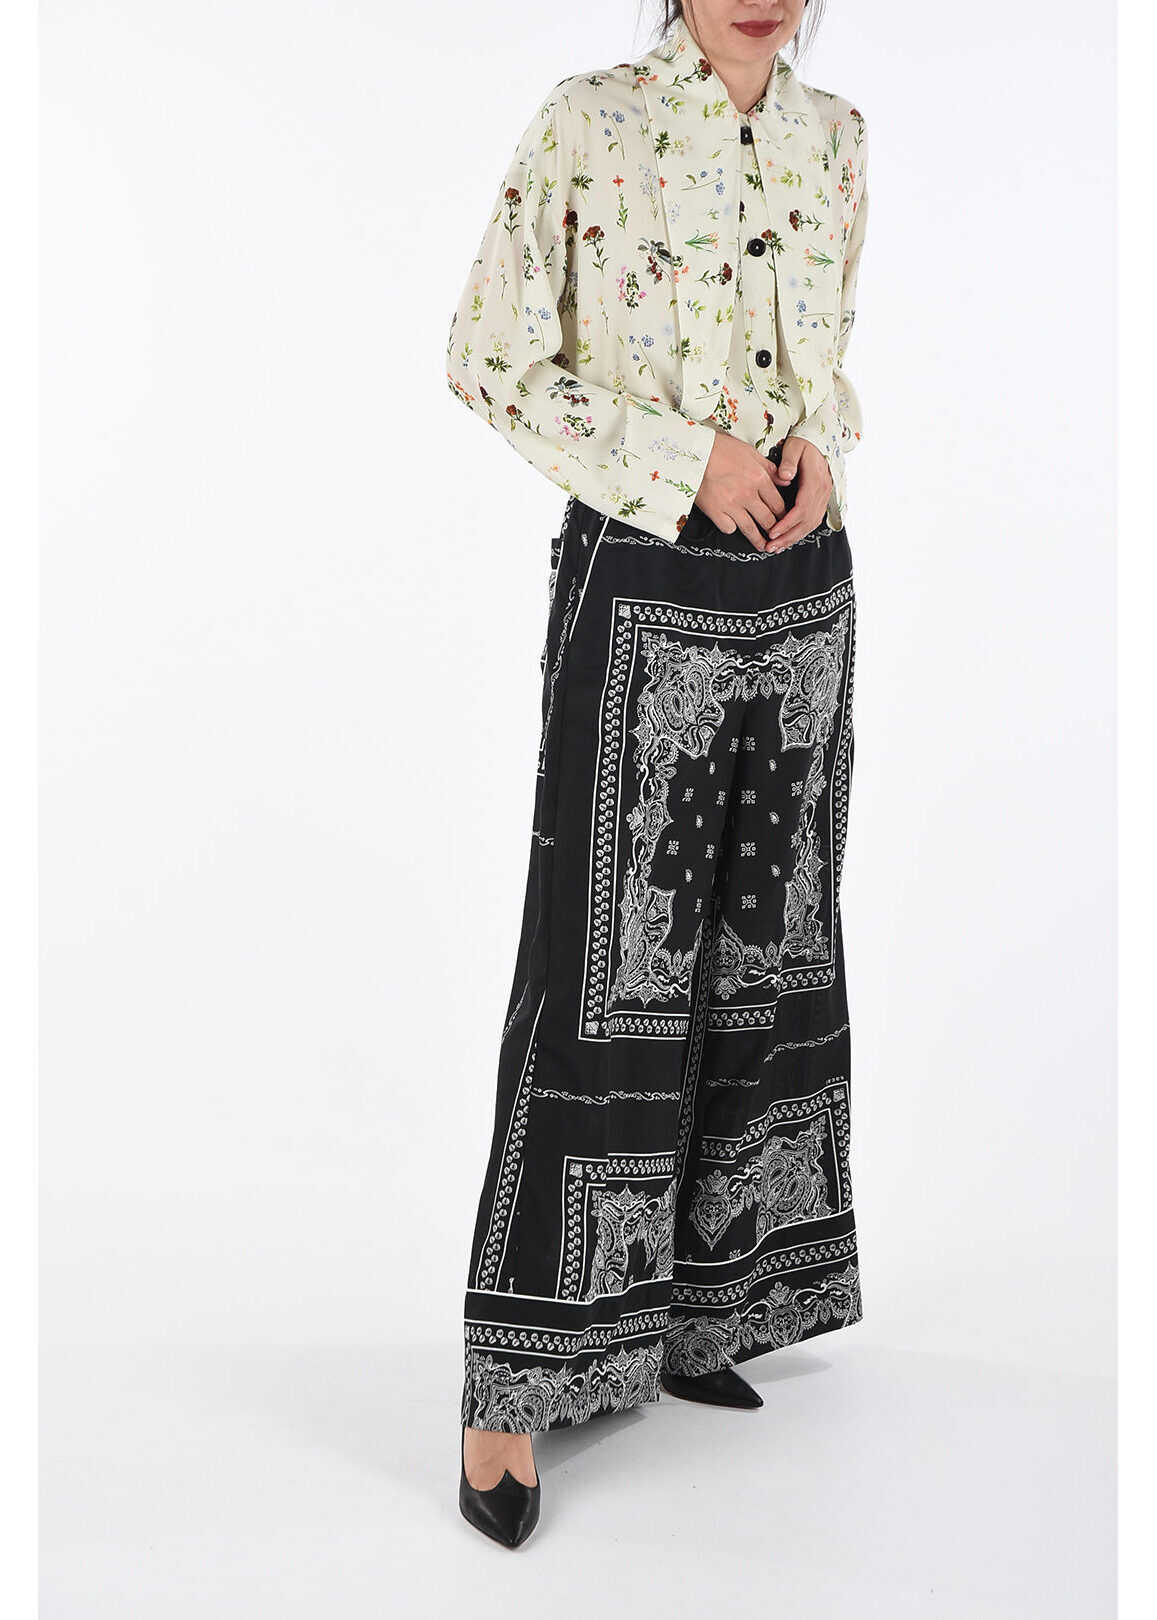 Fay Flowers Printed Blouse WHITE